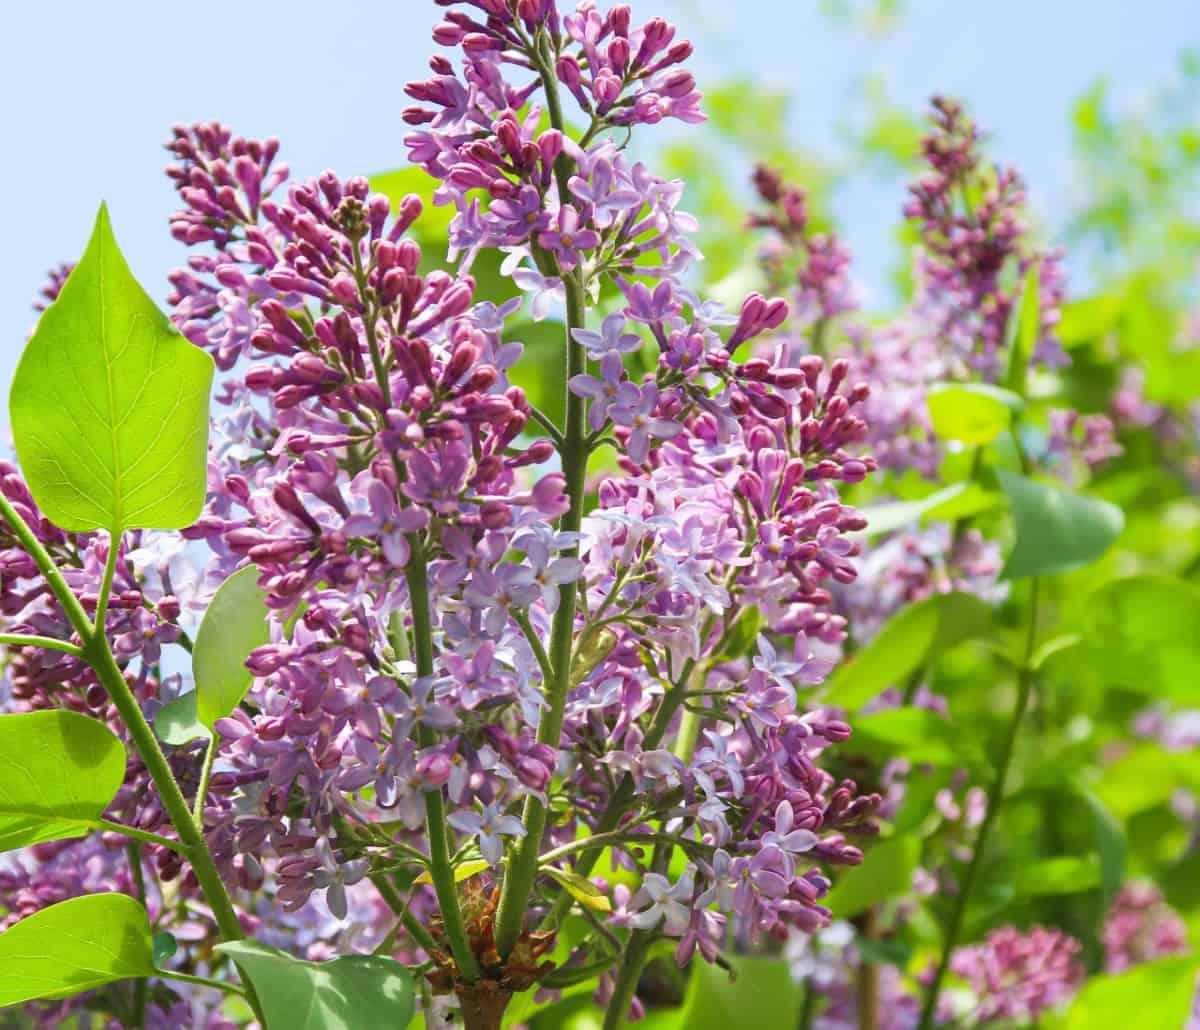 Lilacs are one of the most fragrant shrubs.